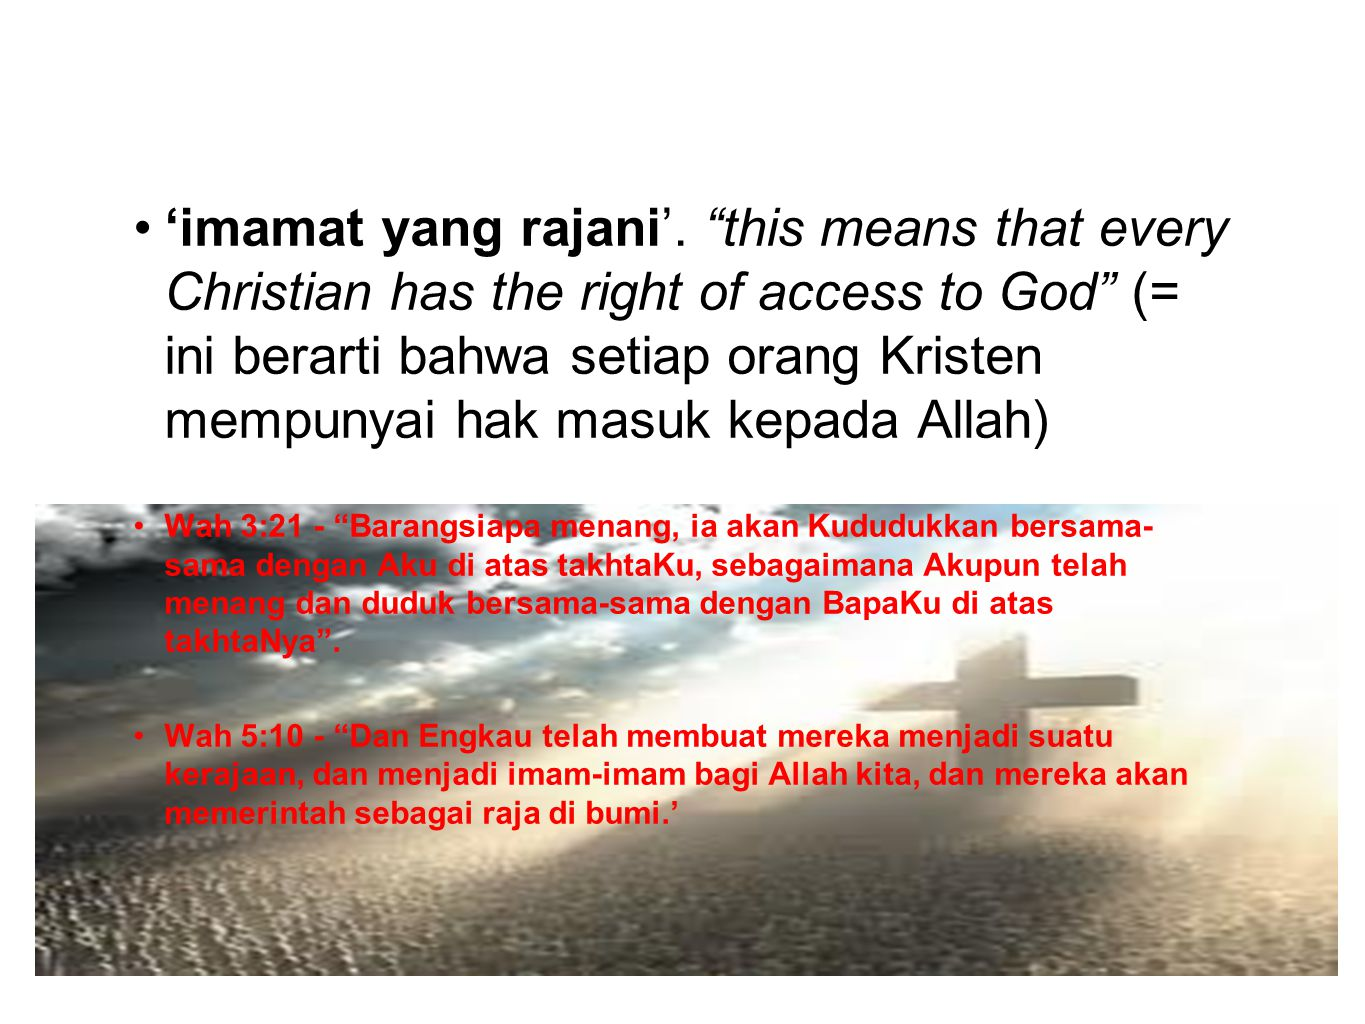 'imamat yang rajani'. this means that every Christian has the right of access to God (= ini berarti bahwa setiap orang Kristen mempunyai hak masuk kepada Allah)